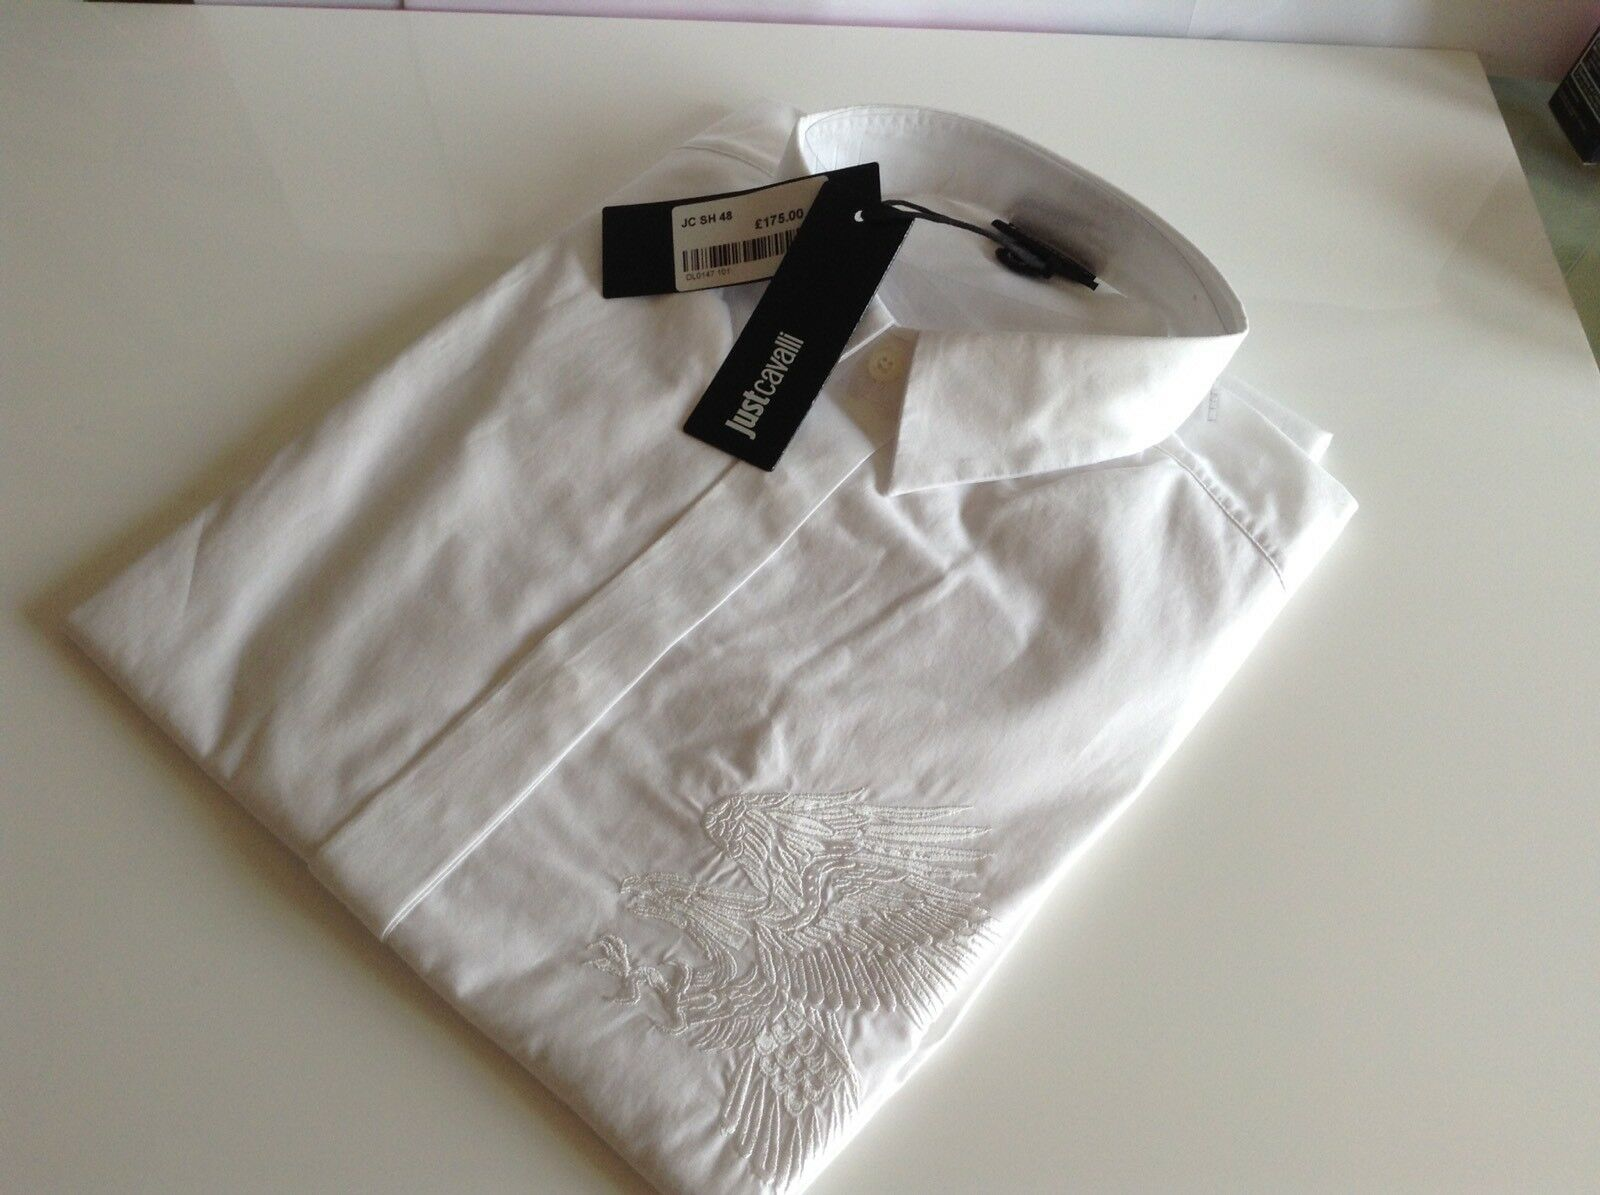 BNWT 100% Auth Just Cavalli Mens Luxury White Eagle Crafted Shirt. 48